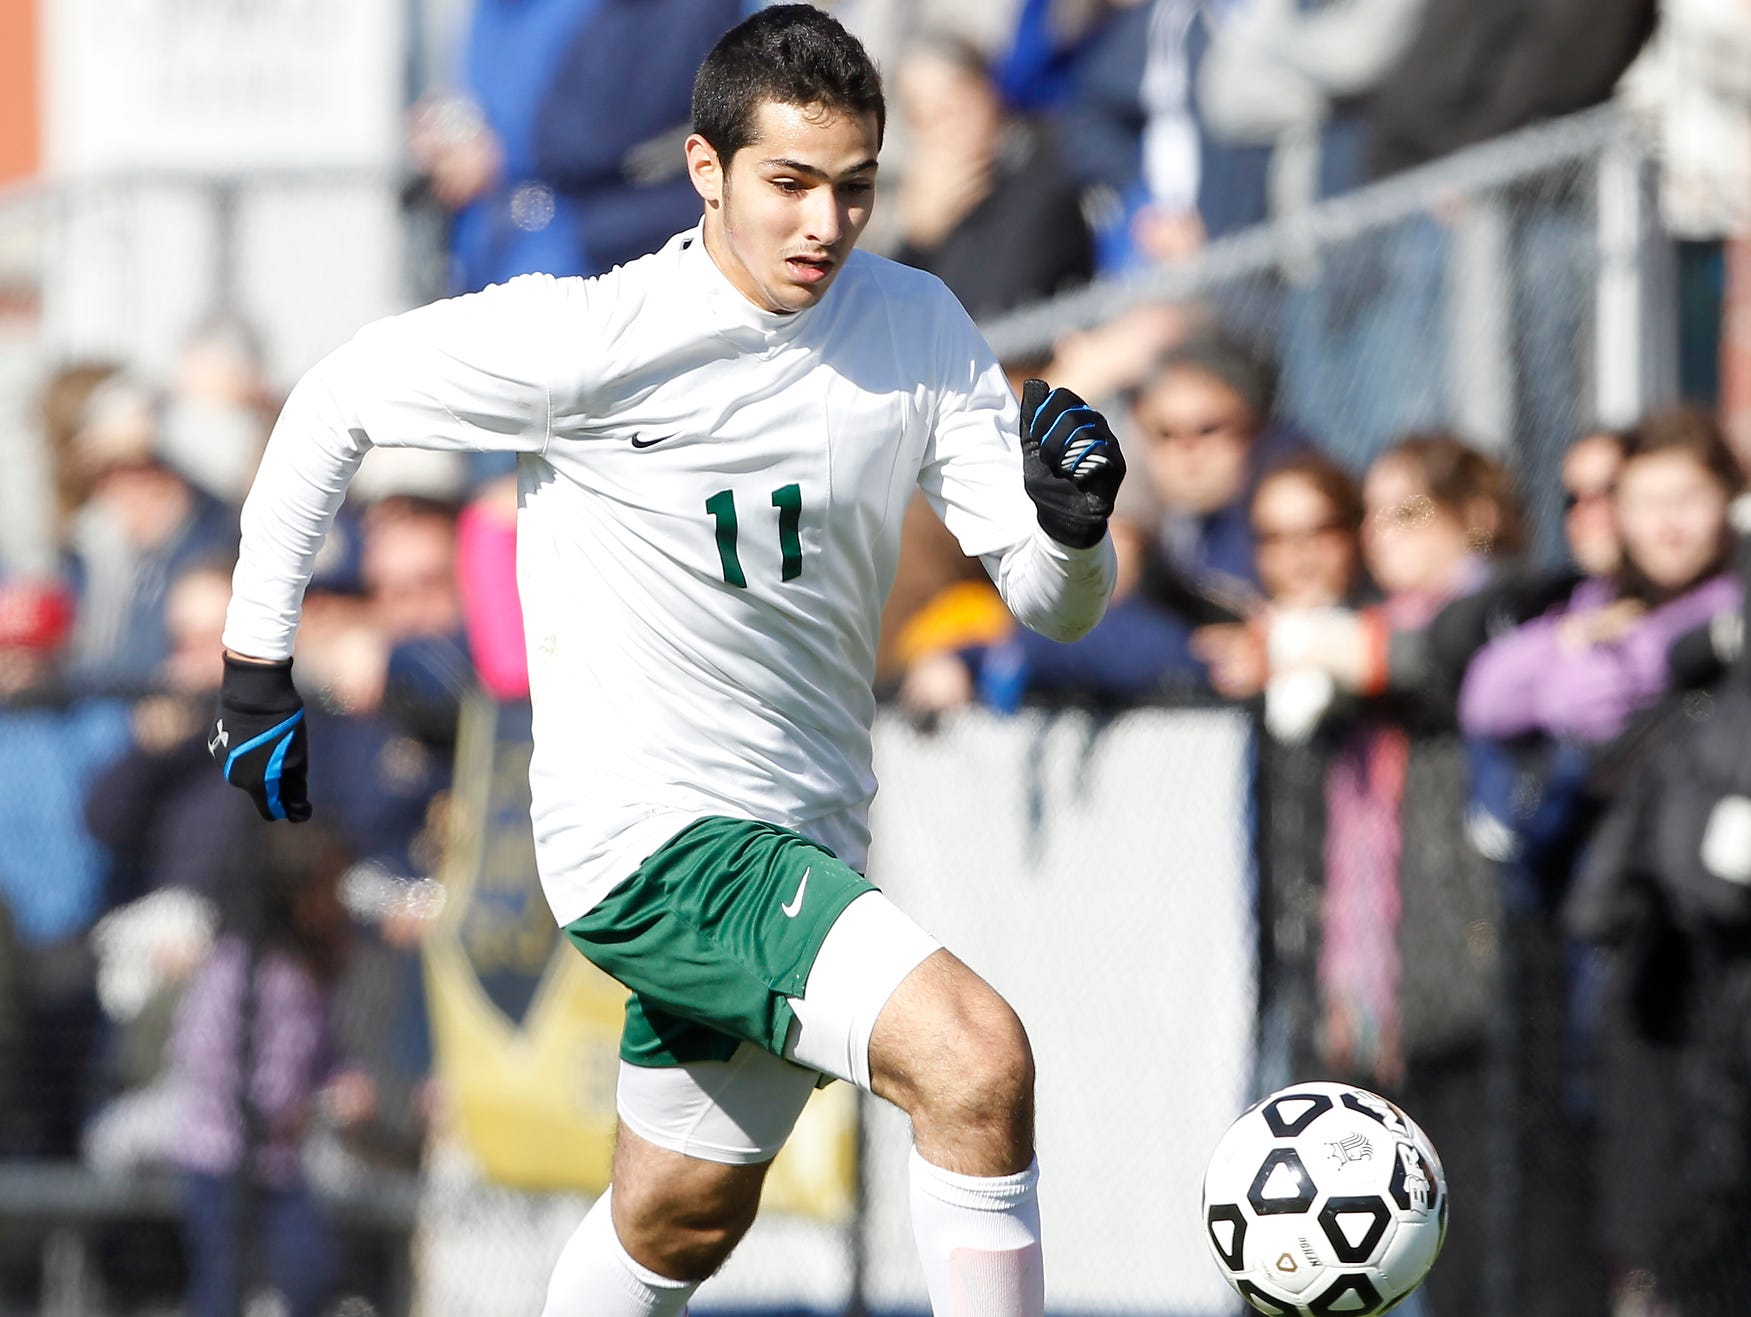 Solomon Schechter's Jonathan Rand (11) works the ball along the sideline during their 9-1 loss to Notre Dame in the NYSPHSAA boys class C soccer final at Middletown High School on Sunday, Nov. 15, 2015.